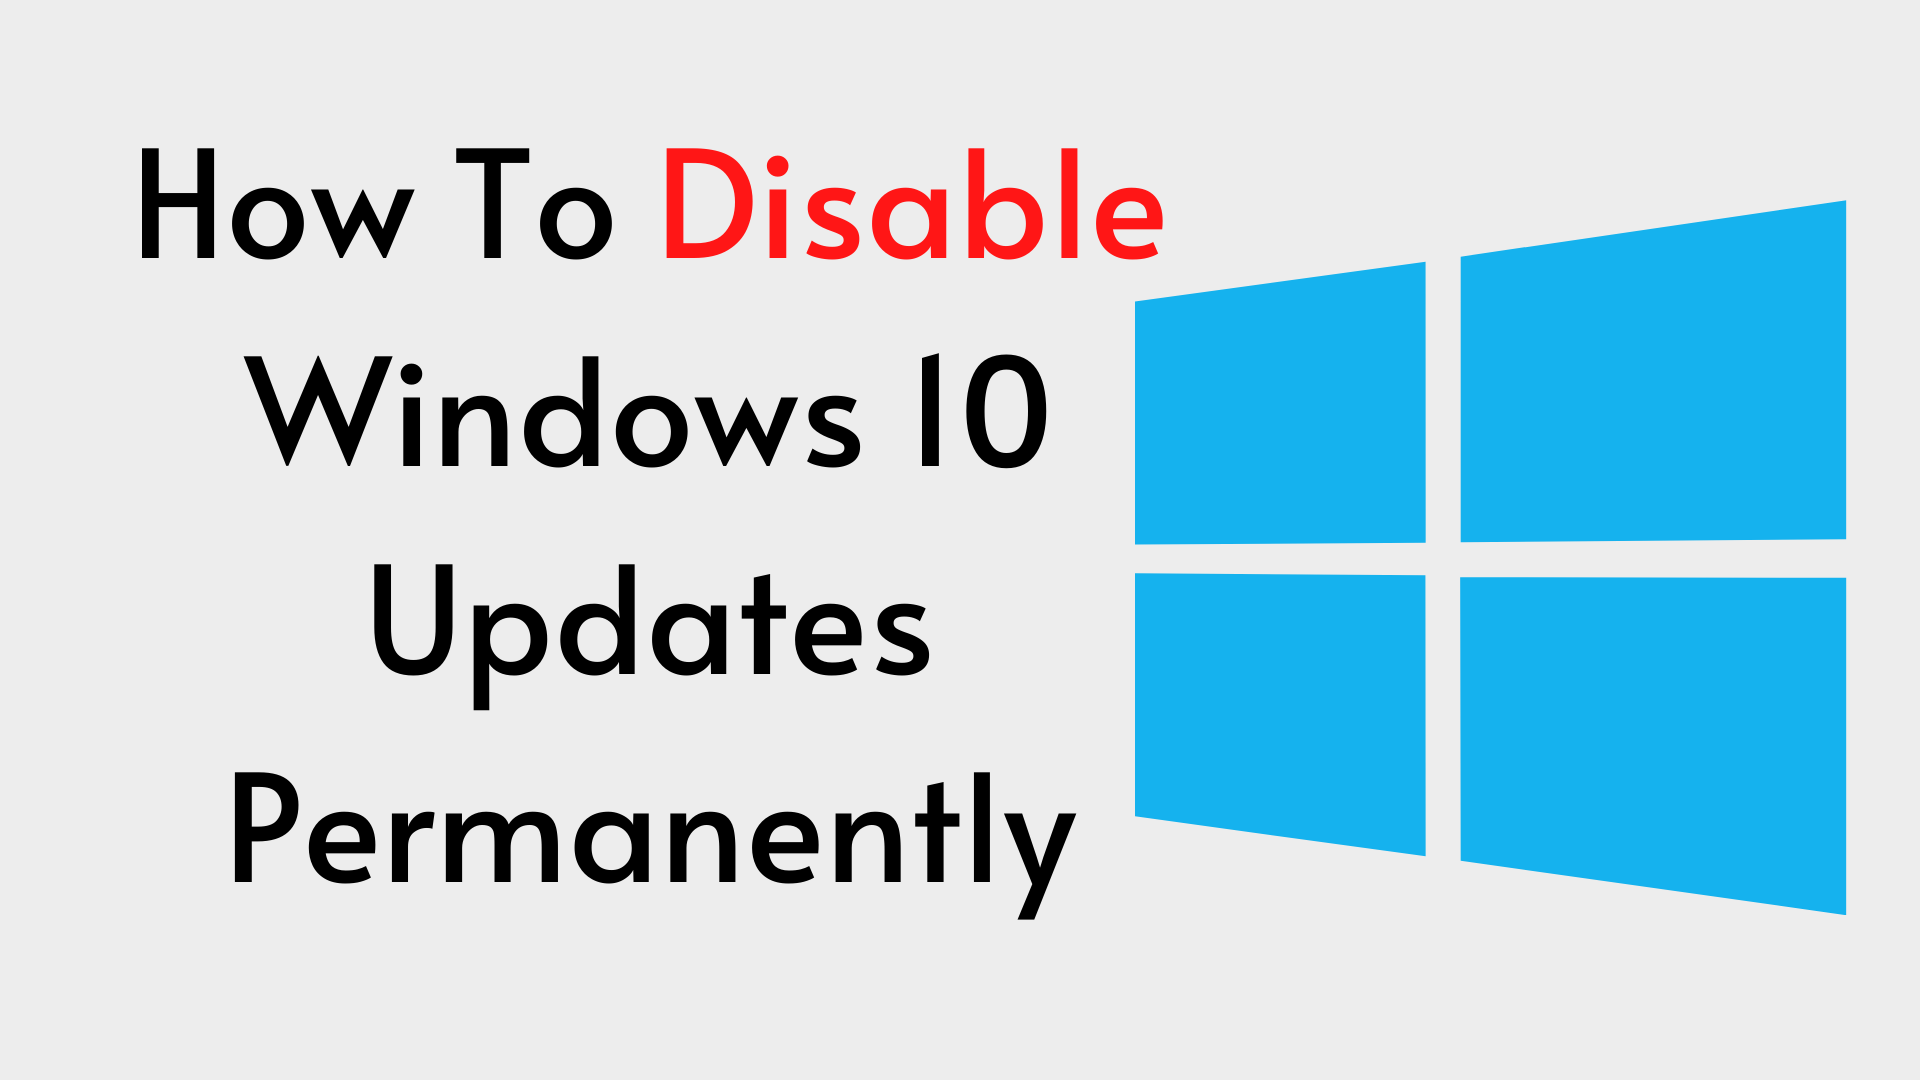 How To Disable Windows 10 Updates Permanently